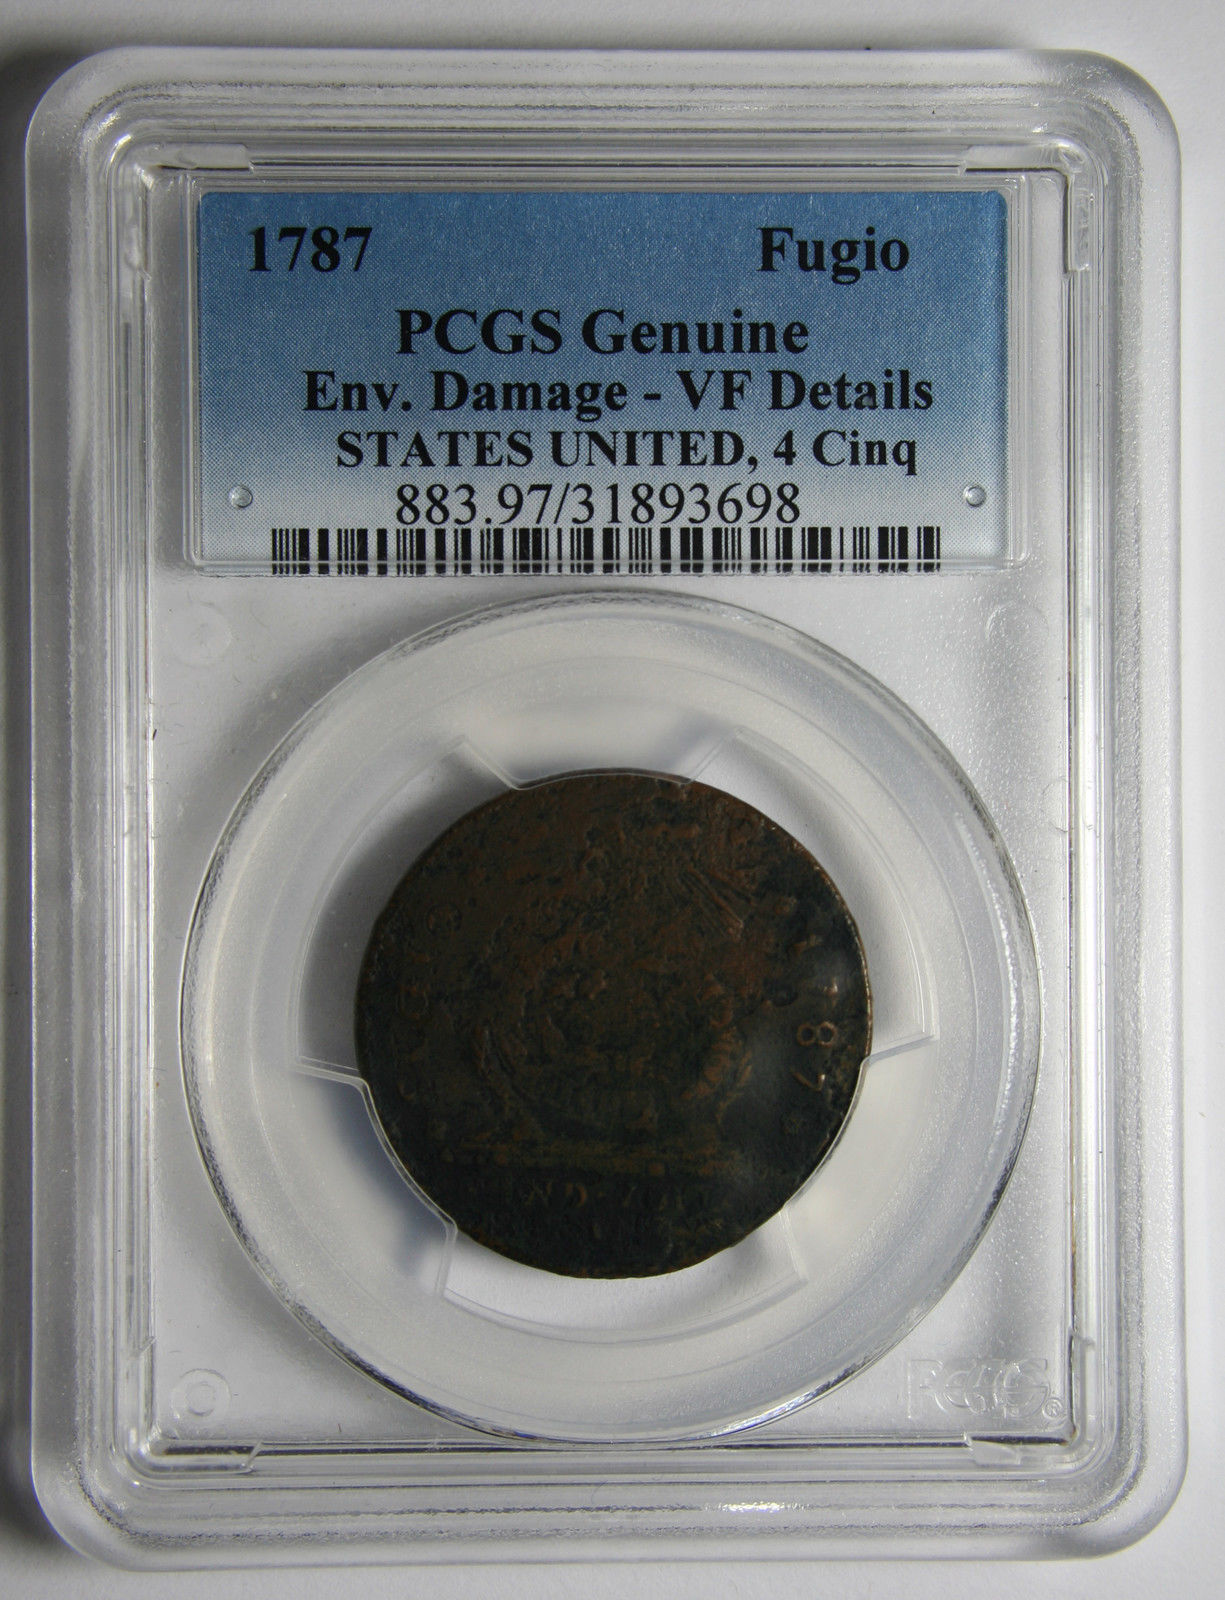 1787 States United 4 Cinq Fugio Colonial Copper Coin Lot # MZ 3927